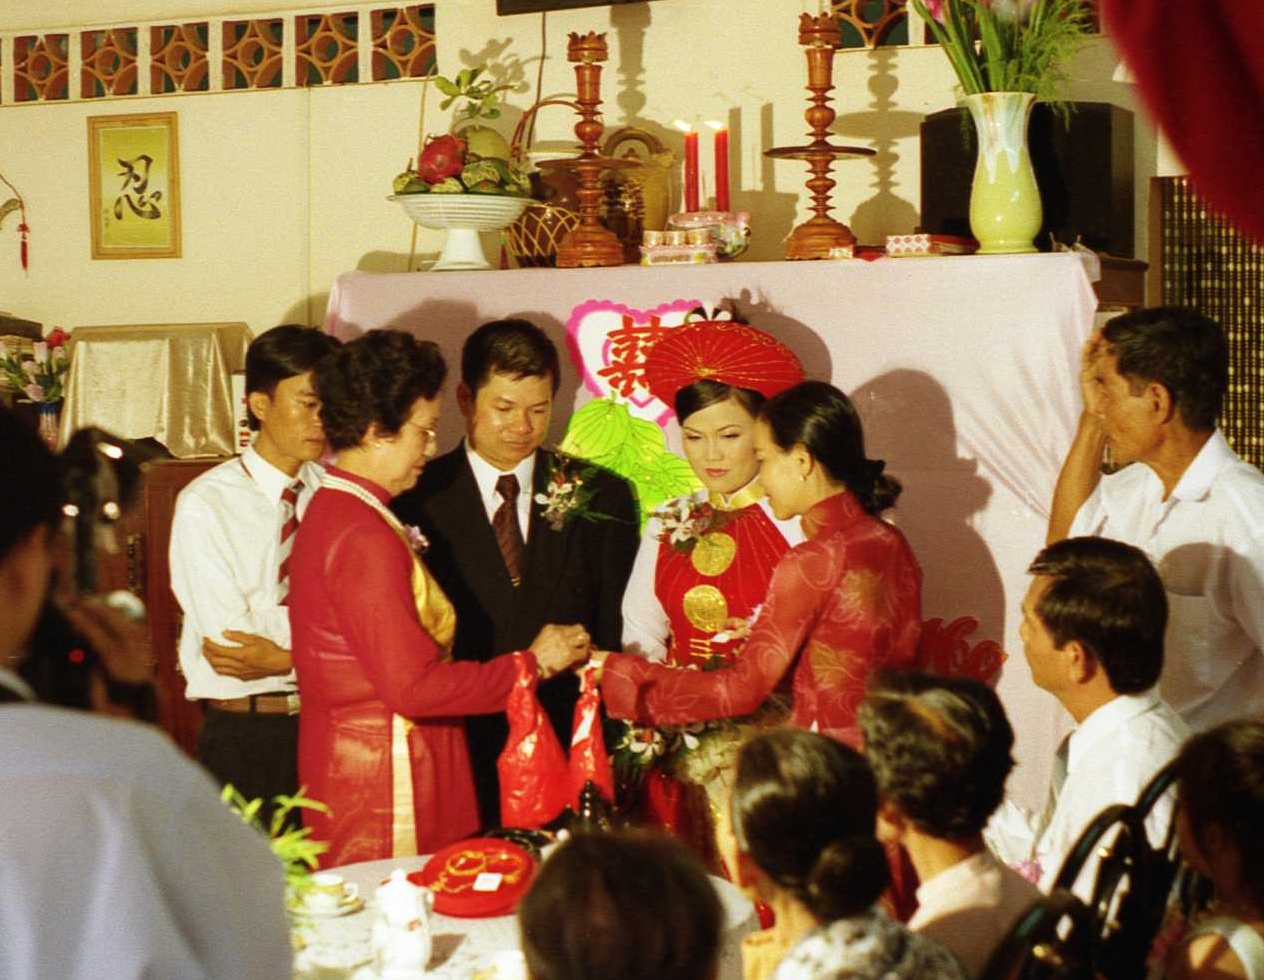 A Vietnamese country wedding. (Photo: Mike Fernwood.CC BY SA 2.0)